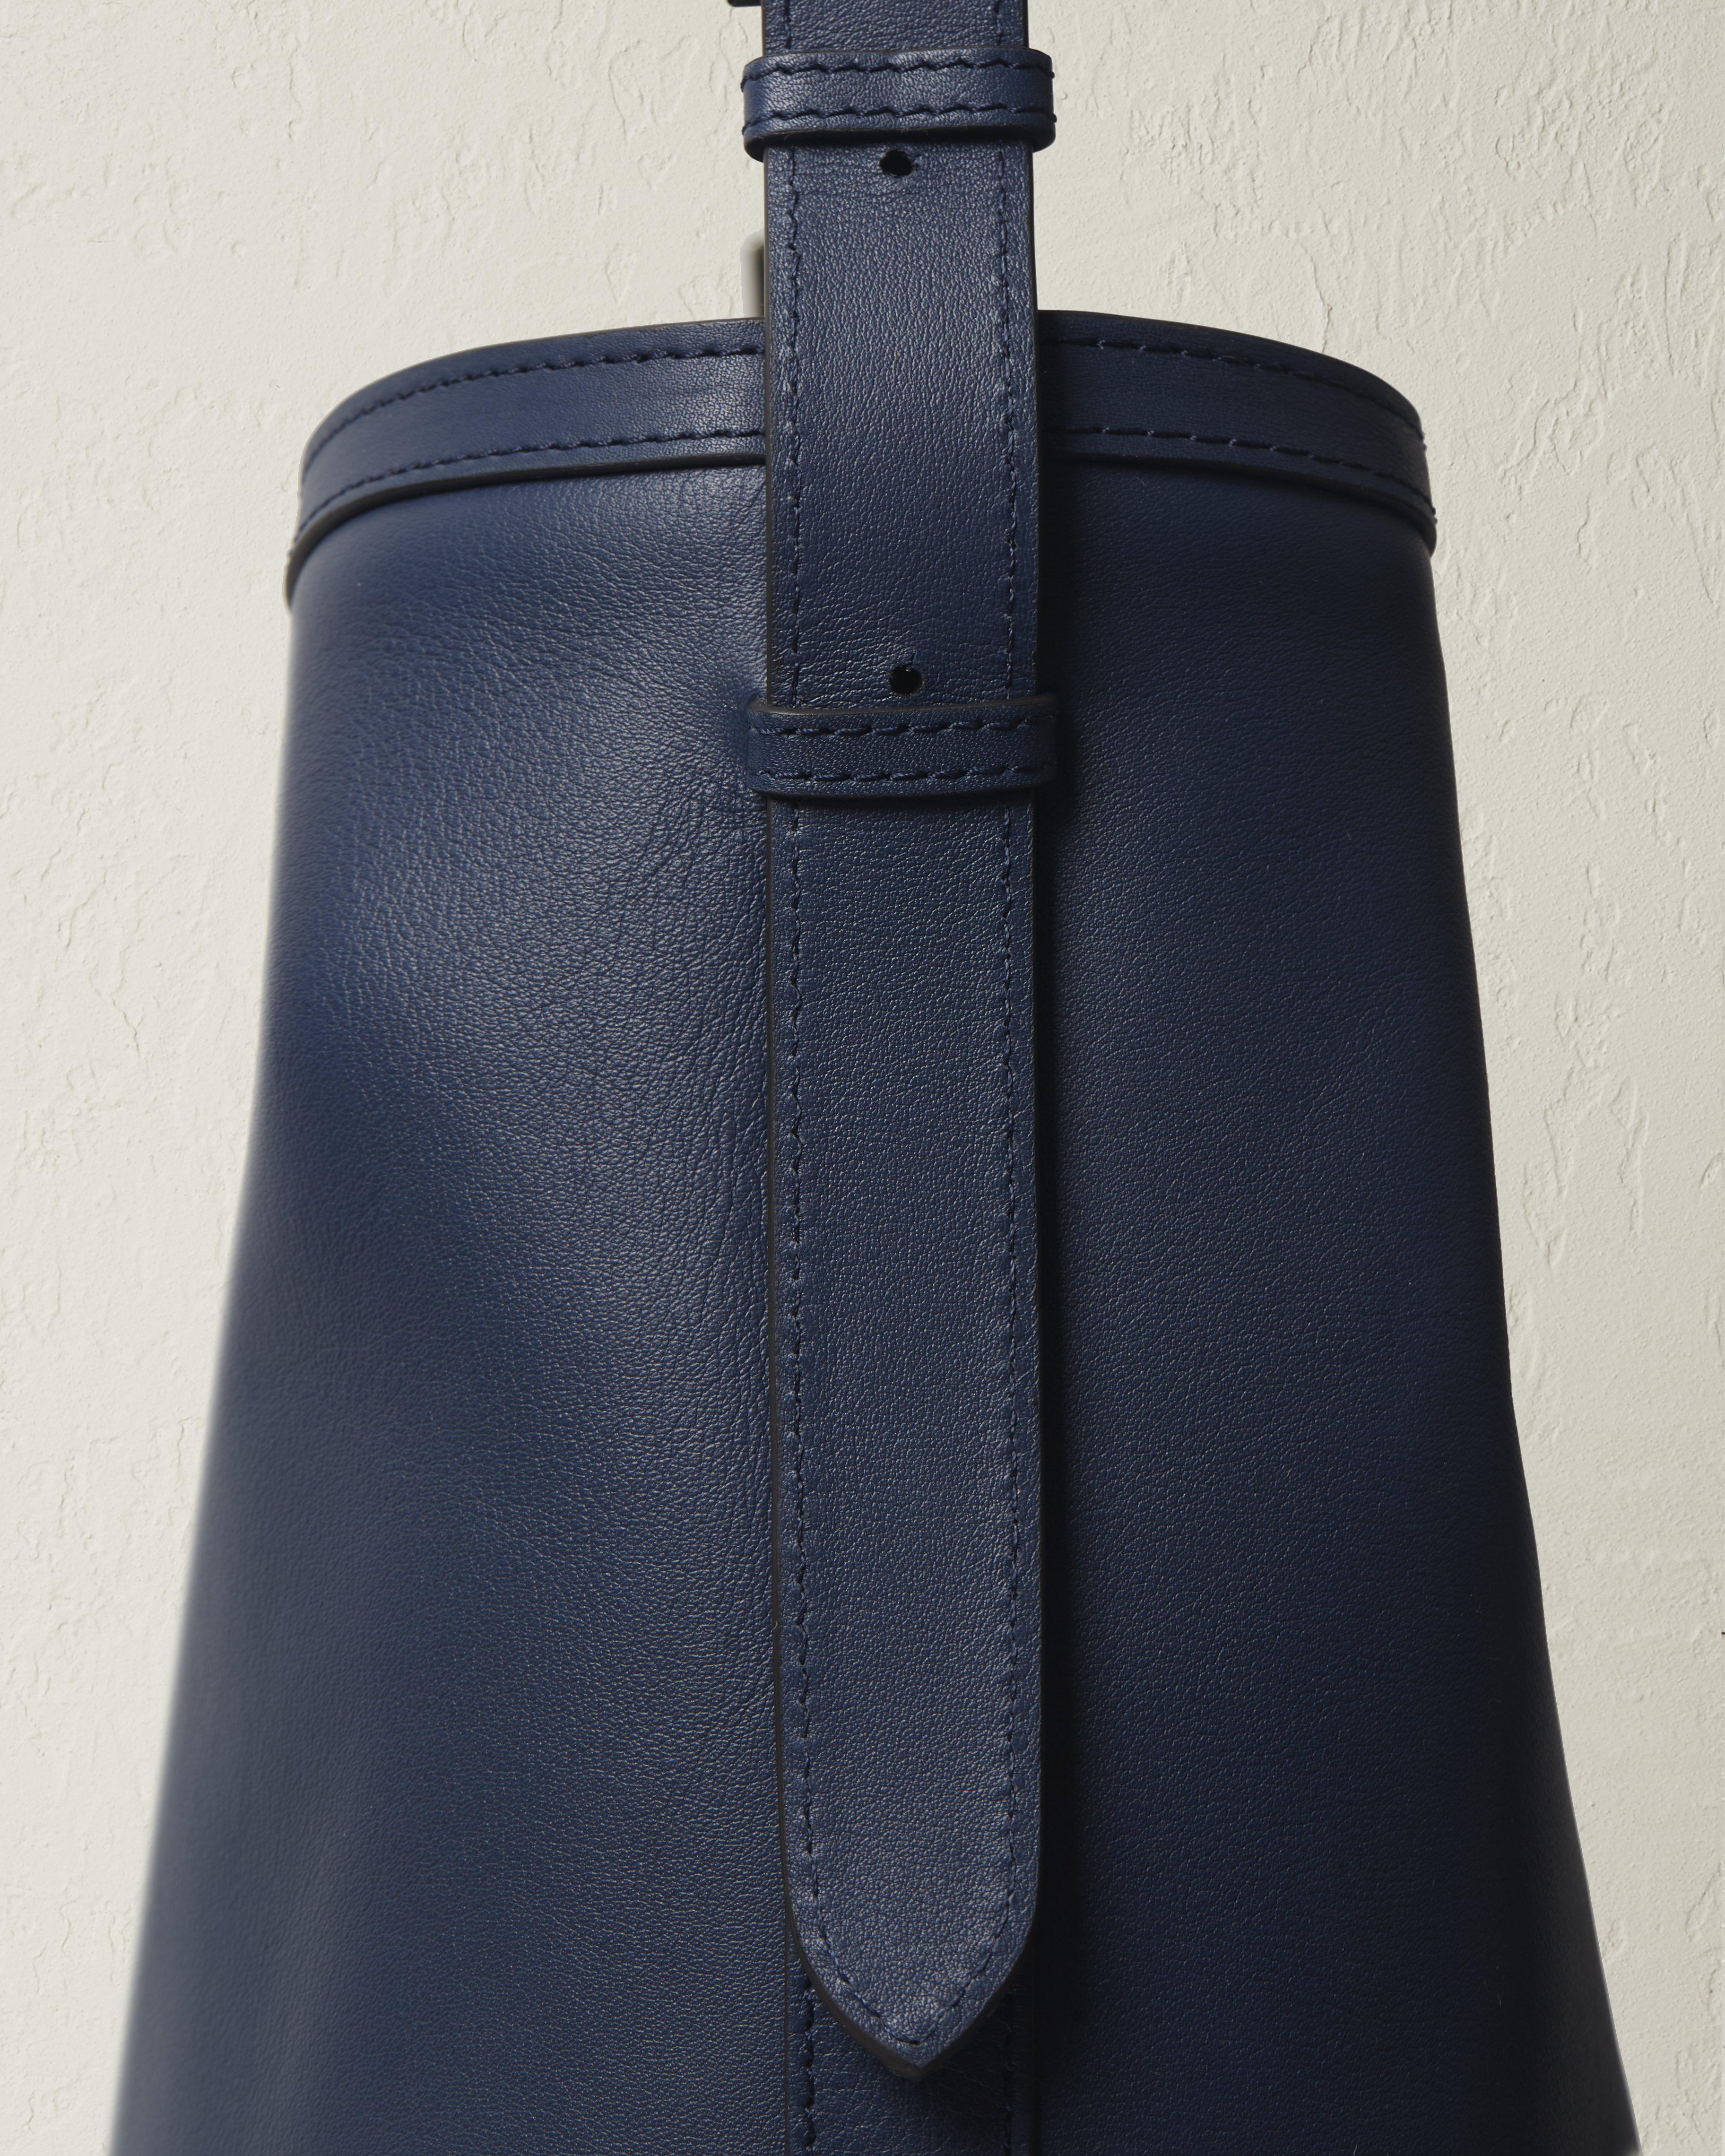 The Hobo in Nappa Leather